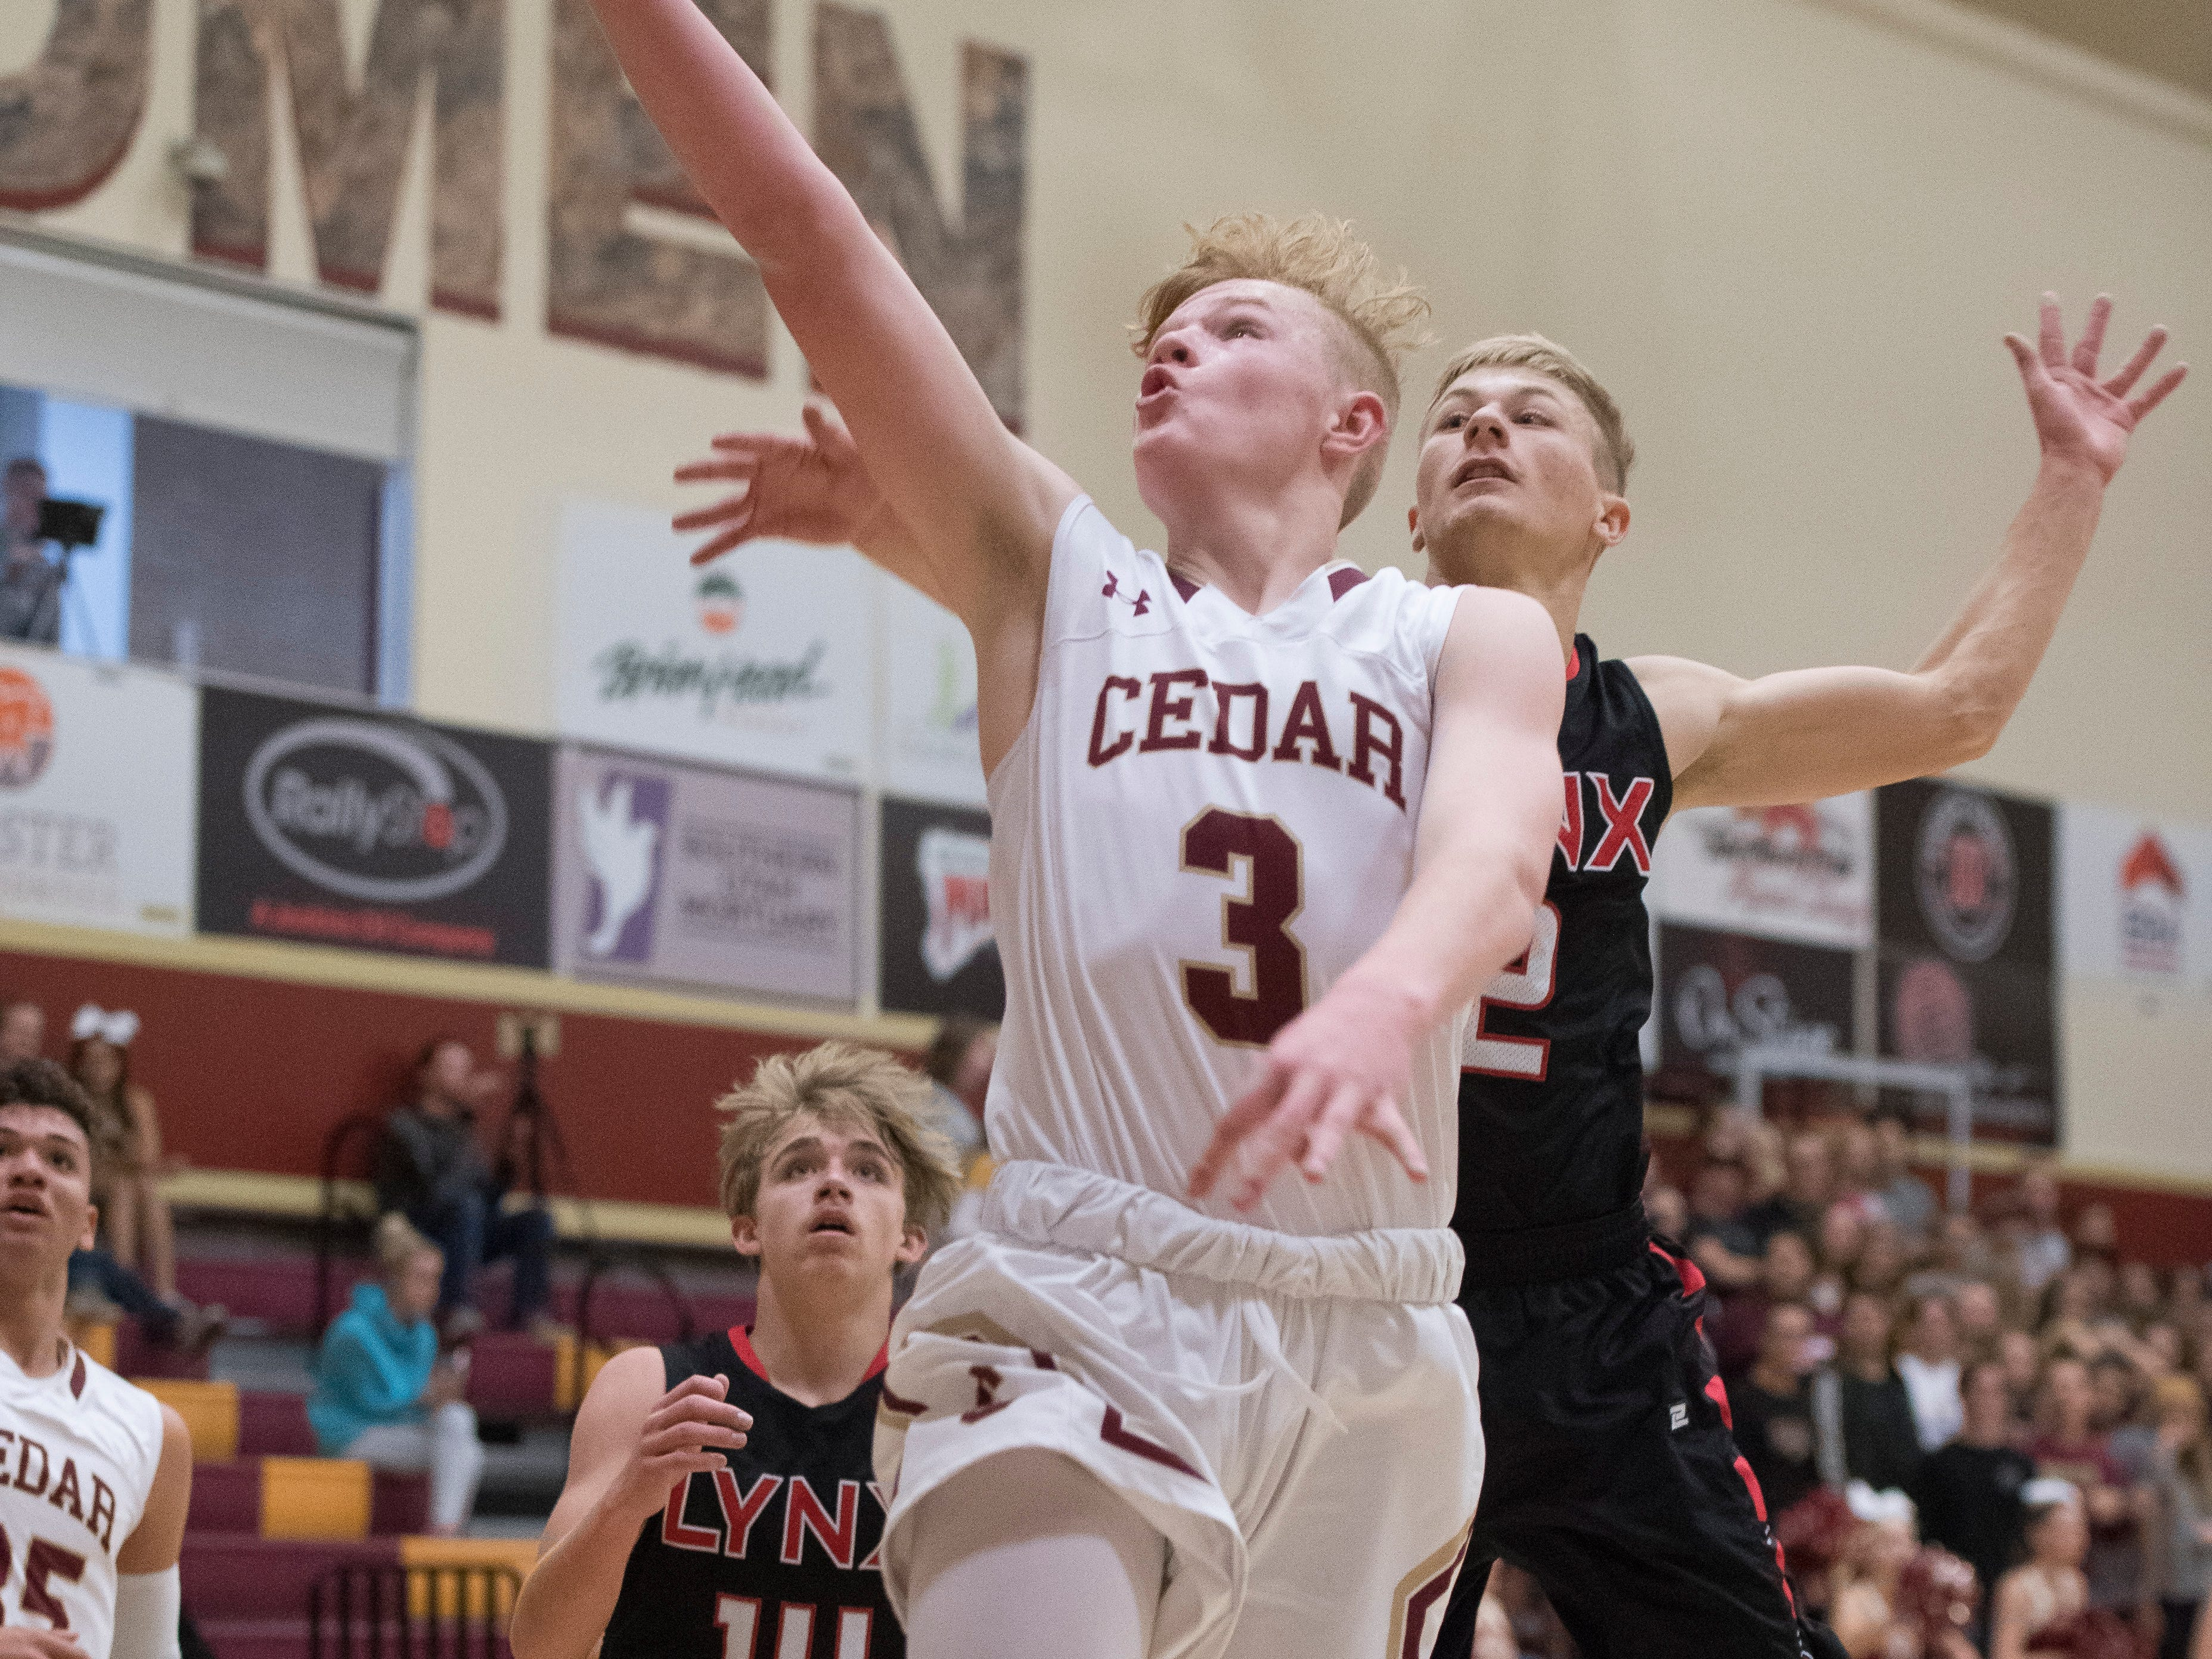 Cedar High School sophomore Gaige Savage (3) shoots a layup against Lincoln County at CHS Wednesday, December 12, 2018. The Redmen won, 80-54.